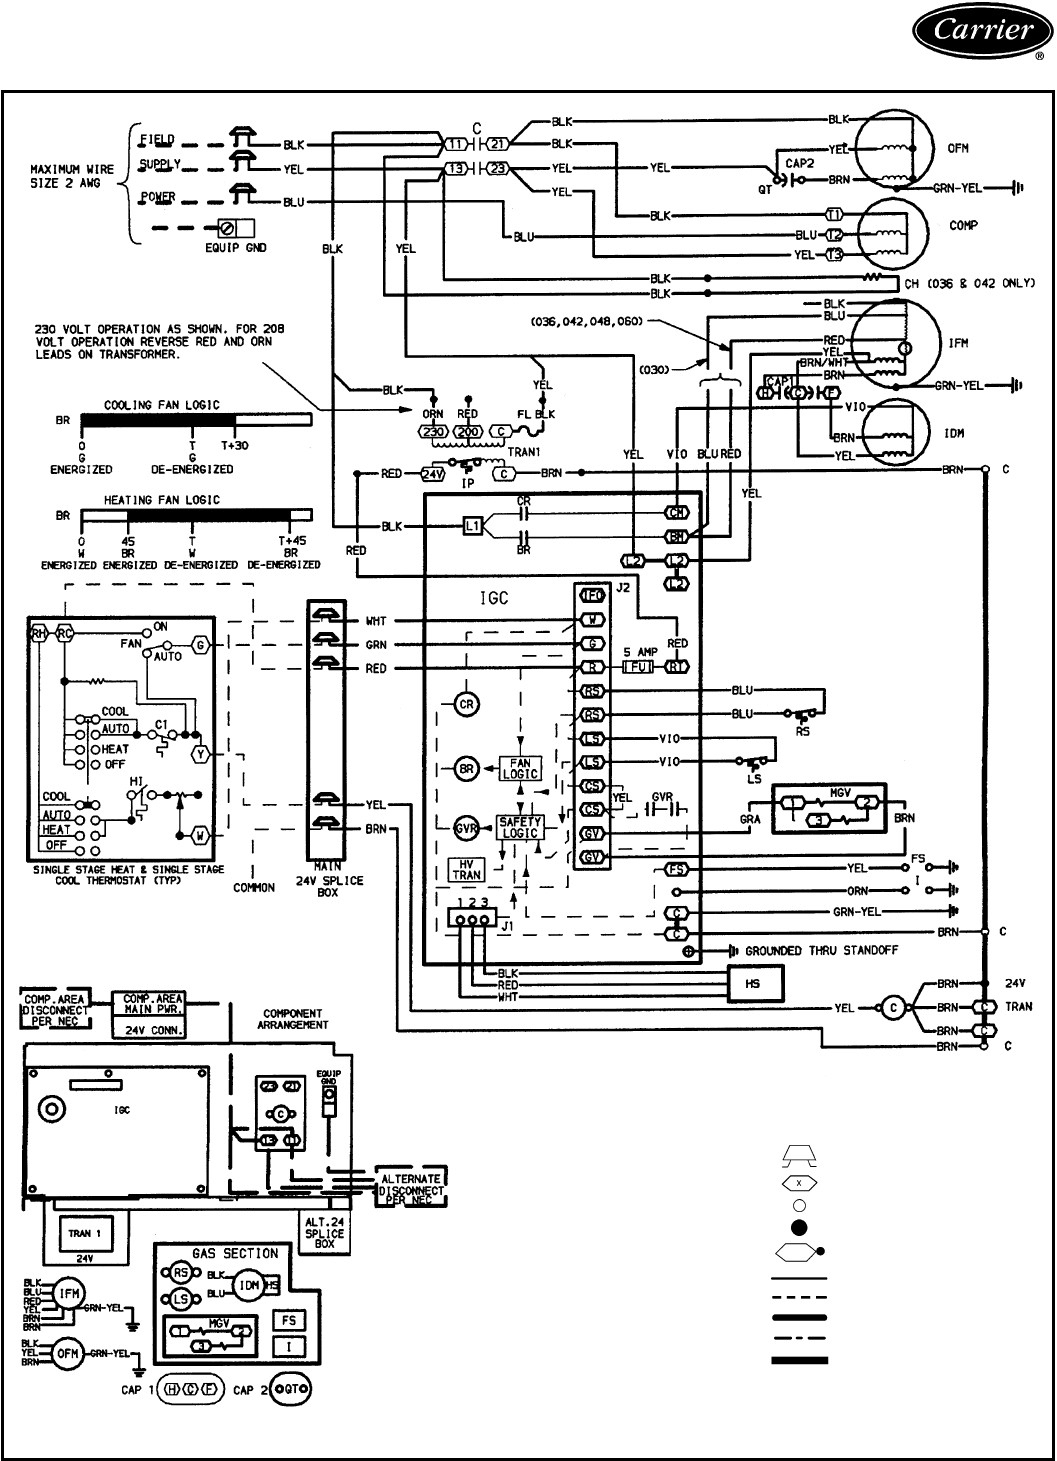 Power Acoustik Wiring Diagram | Manual E-Books - Power Acoustik Pdn-626B Wiring Diagram